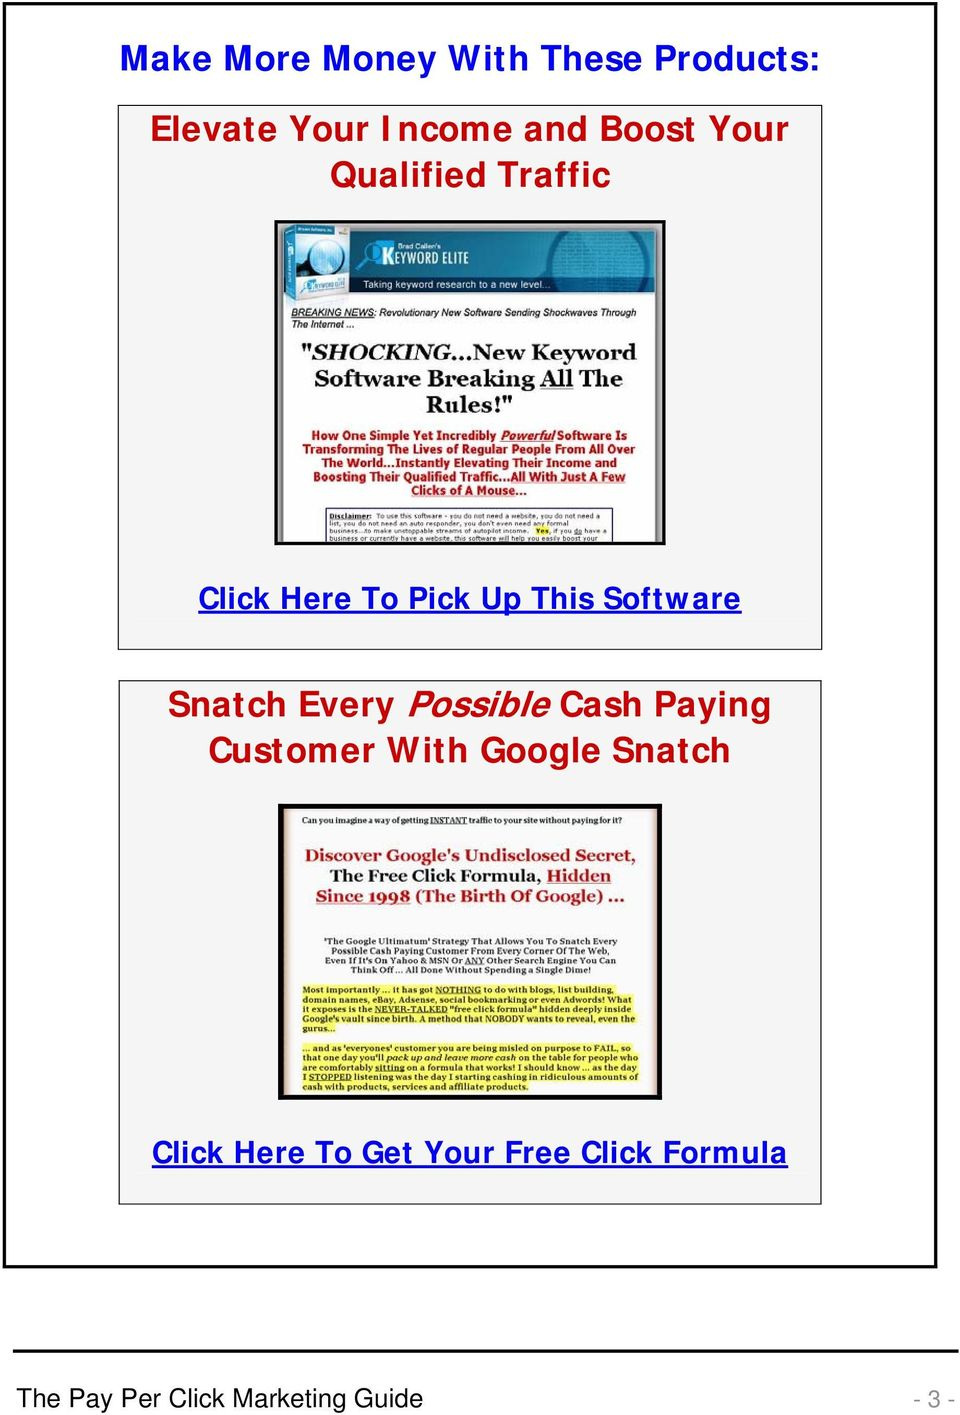 Every Possible Cash Paying Customer With Google Snatch Click Here